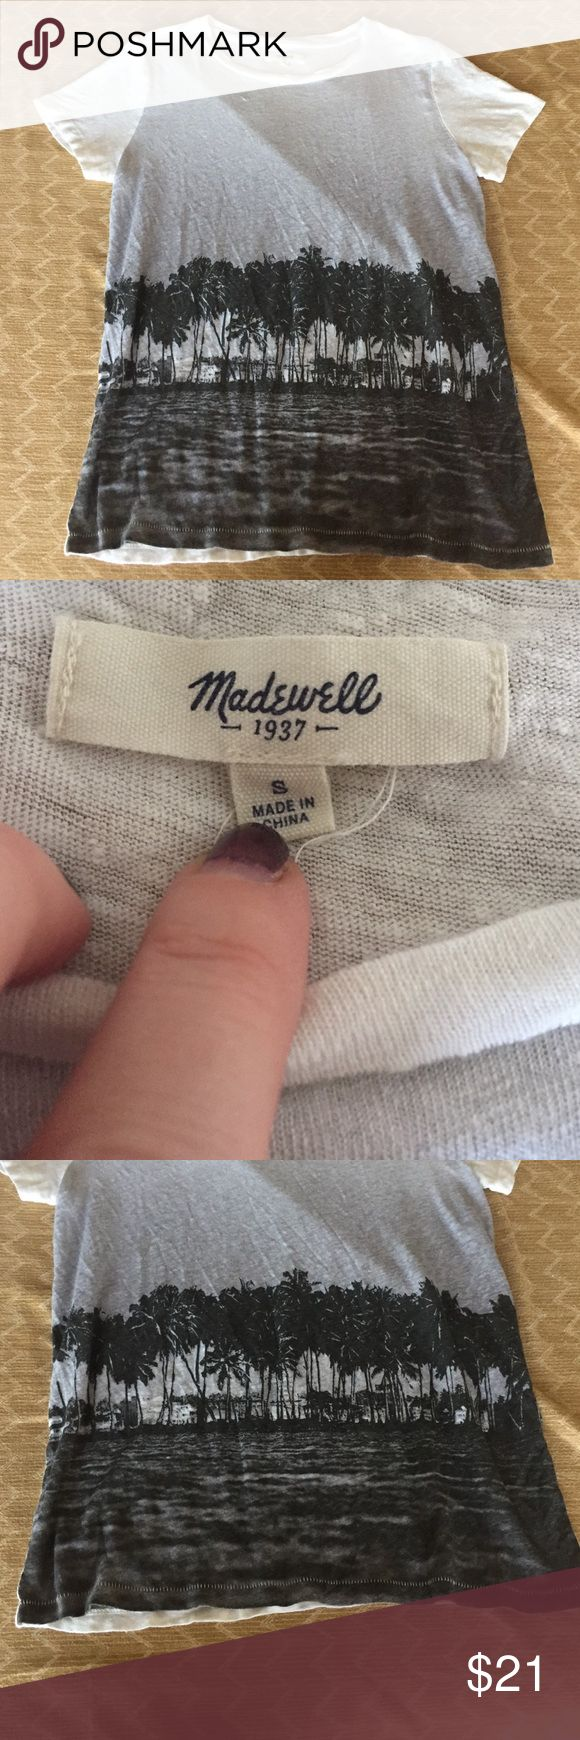 Madewell Palm Tree SS Tee Sz S Great top from Madewell. Size small, palm tree graphic on front. GUC, no stains. No trades, bundle and save! Madewell Tops